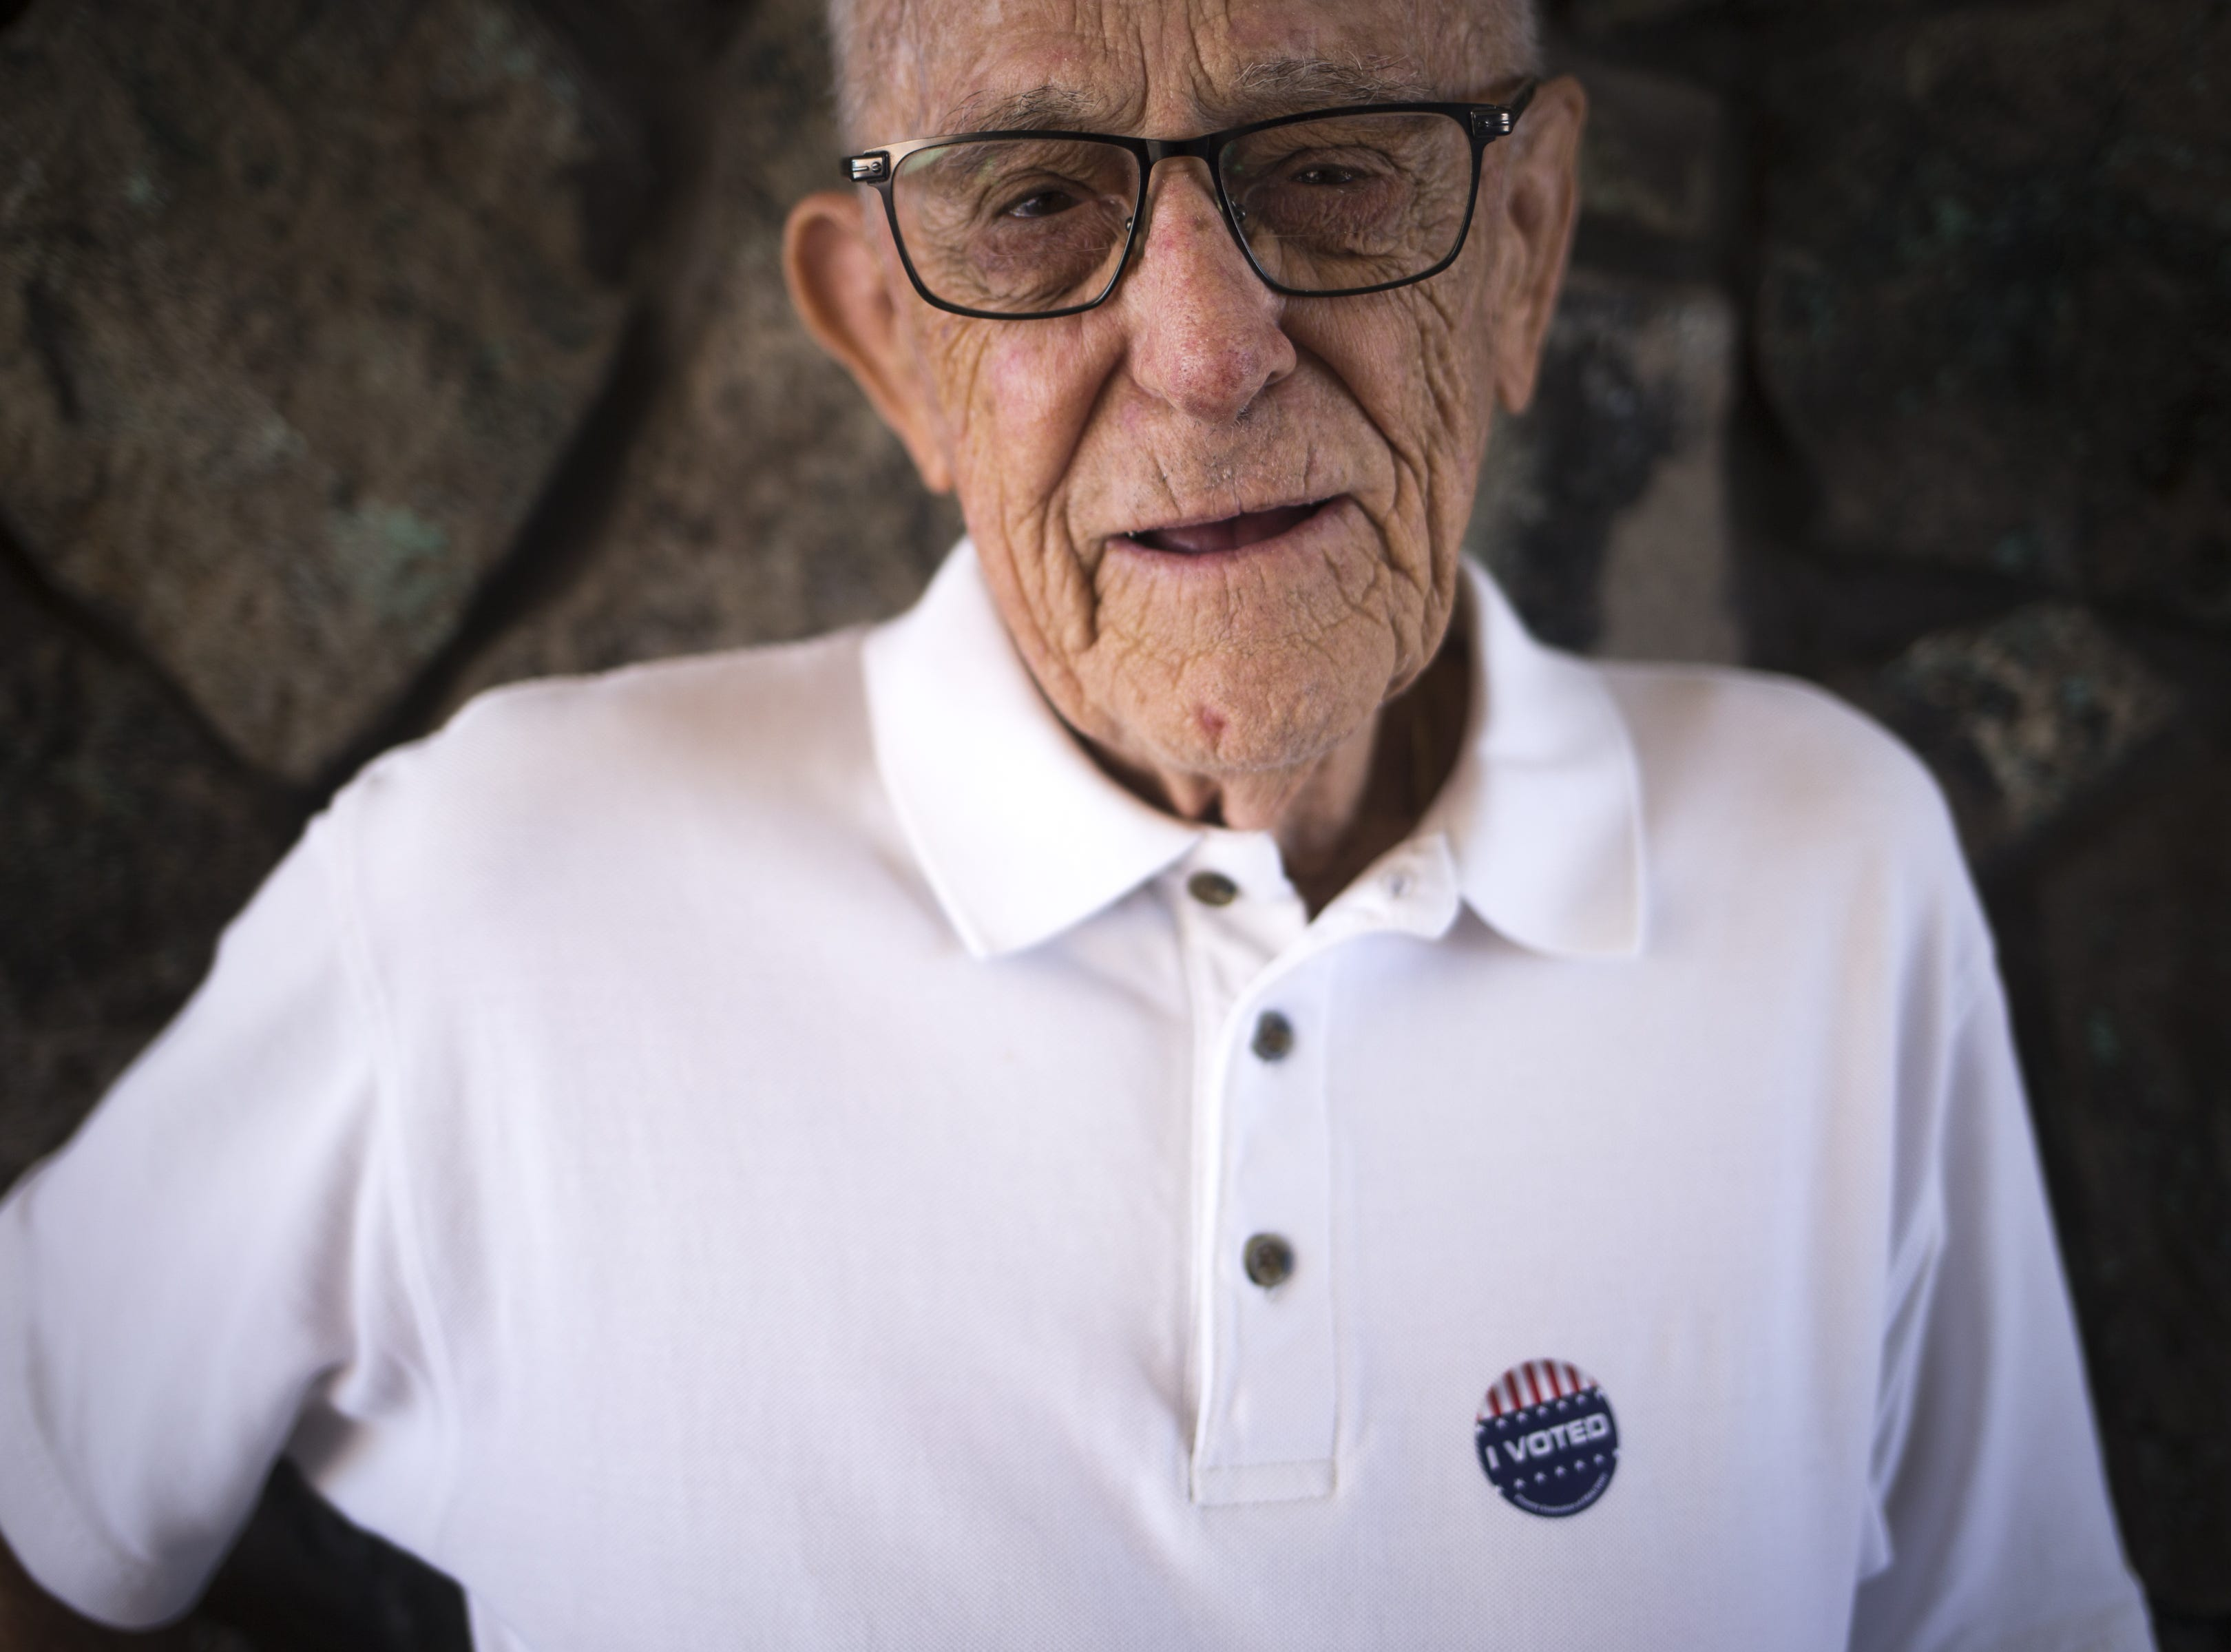 A portrait of Don Johne after he voted, Nov. 6, 2018, at Lakeview Rec Center, 10626 W. Thunderbird Blvd. in Sun City.